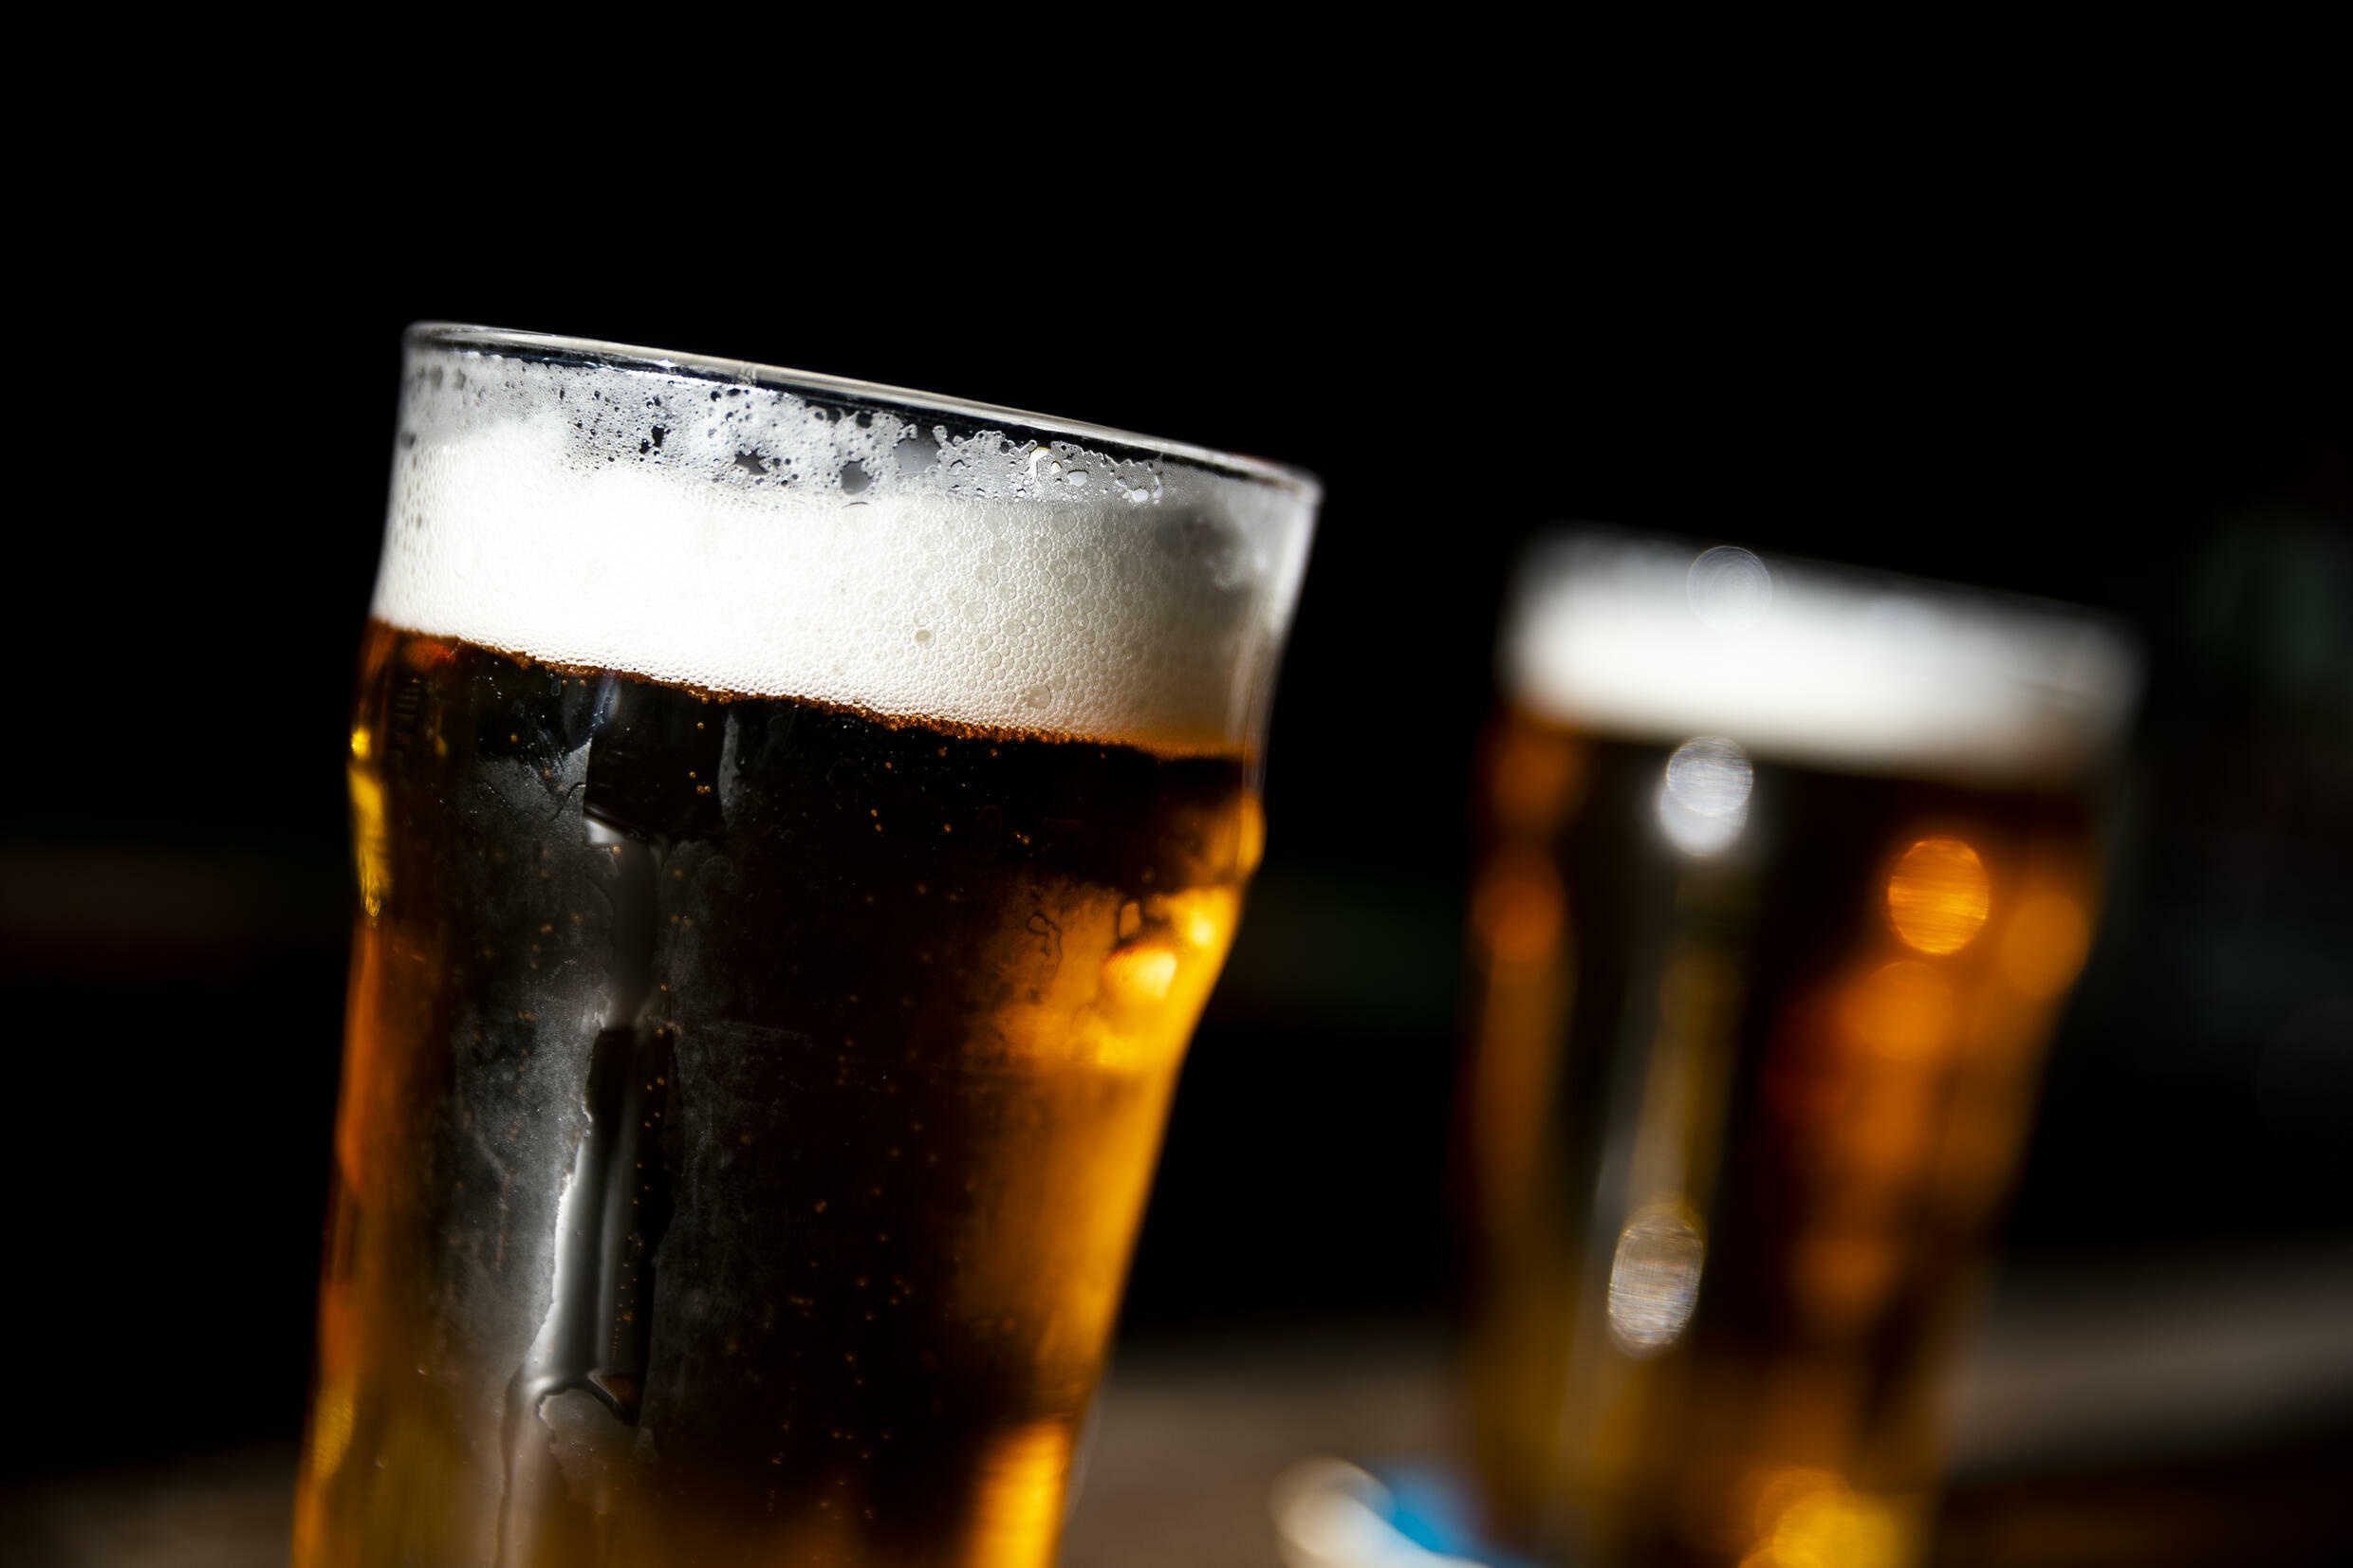 Most cases were linked to heavy drinking, but one in seven of these alcohol-related cancers were linked to moderate consumption of two drinks a day